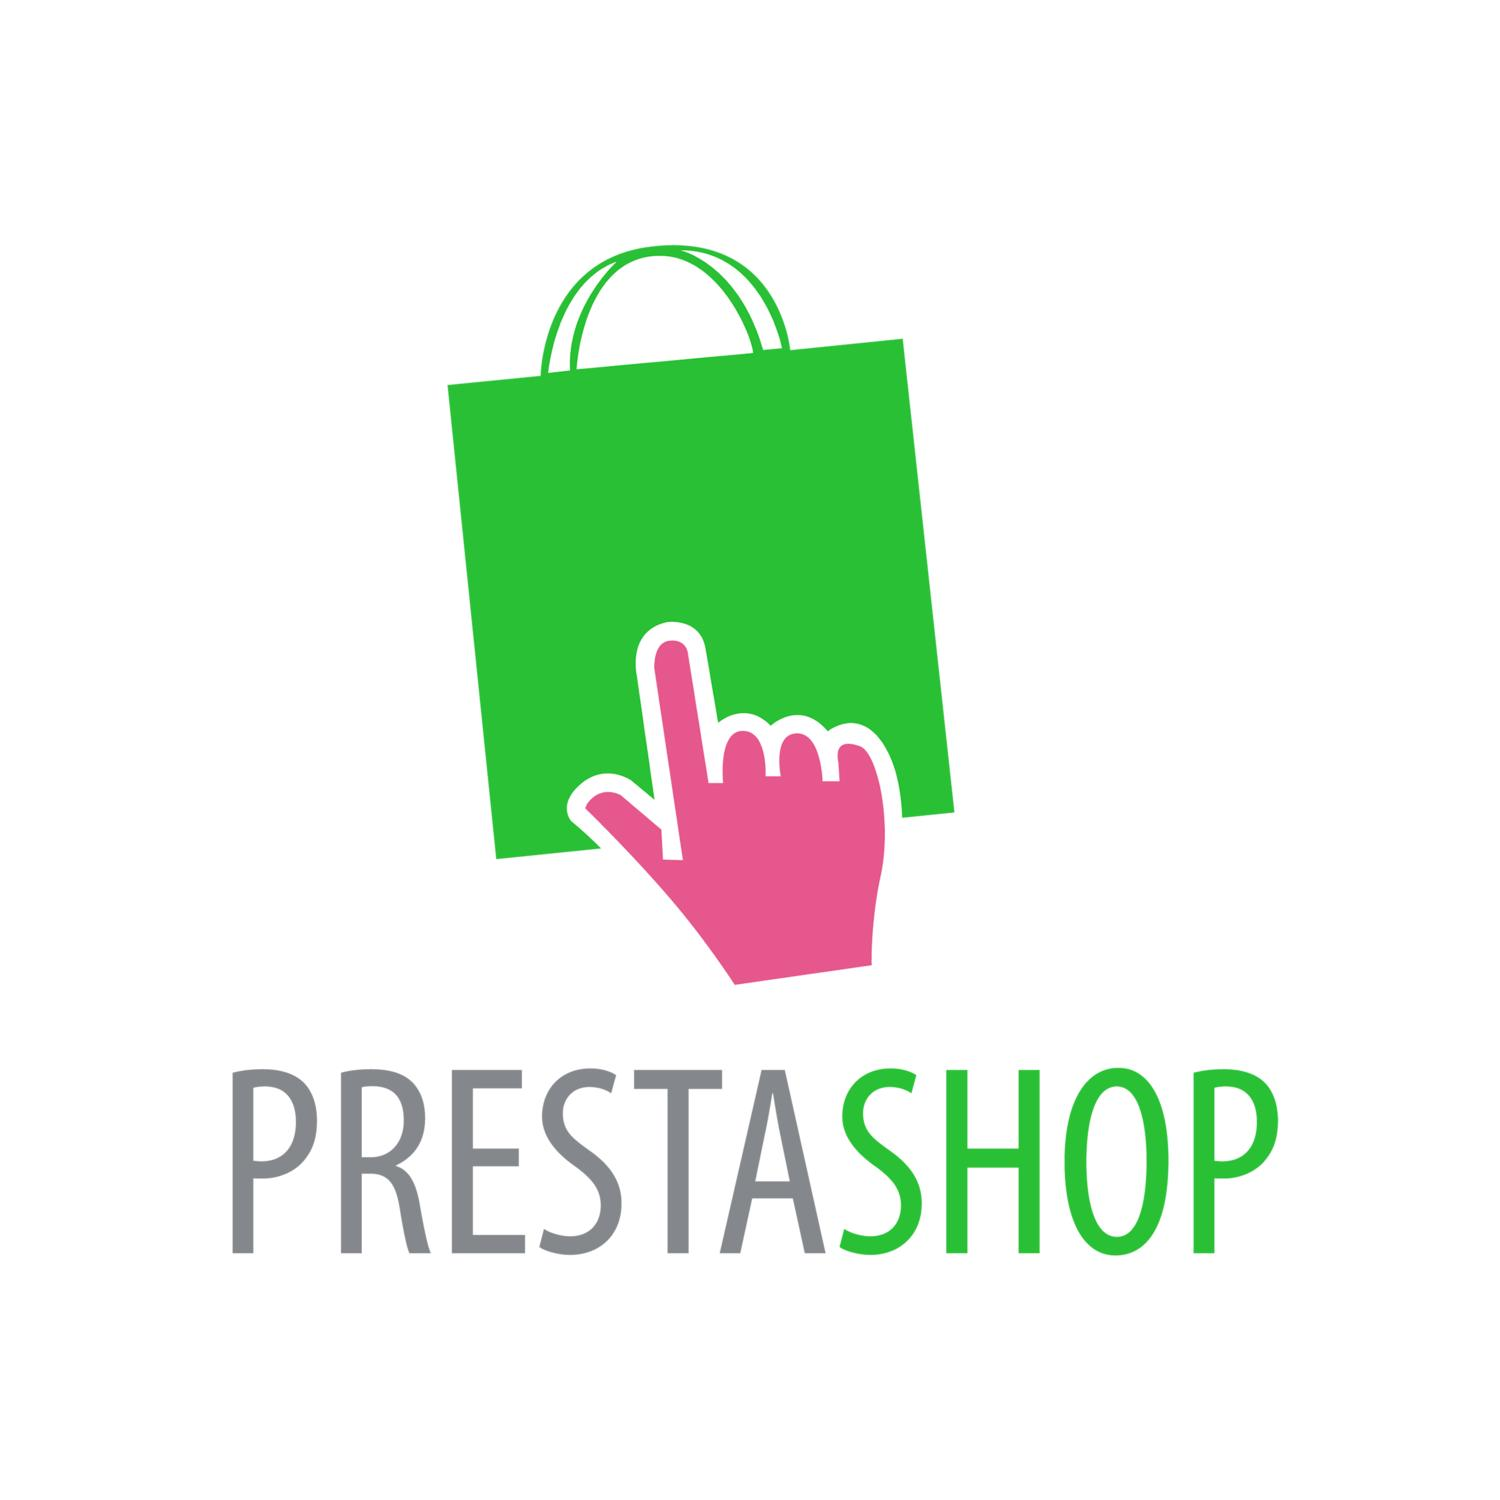 Prestashop Development  Experts  New Development / Redesign  by samirkaila - 53088